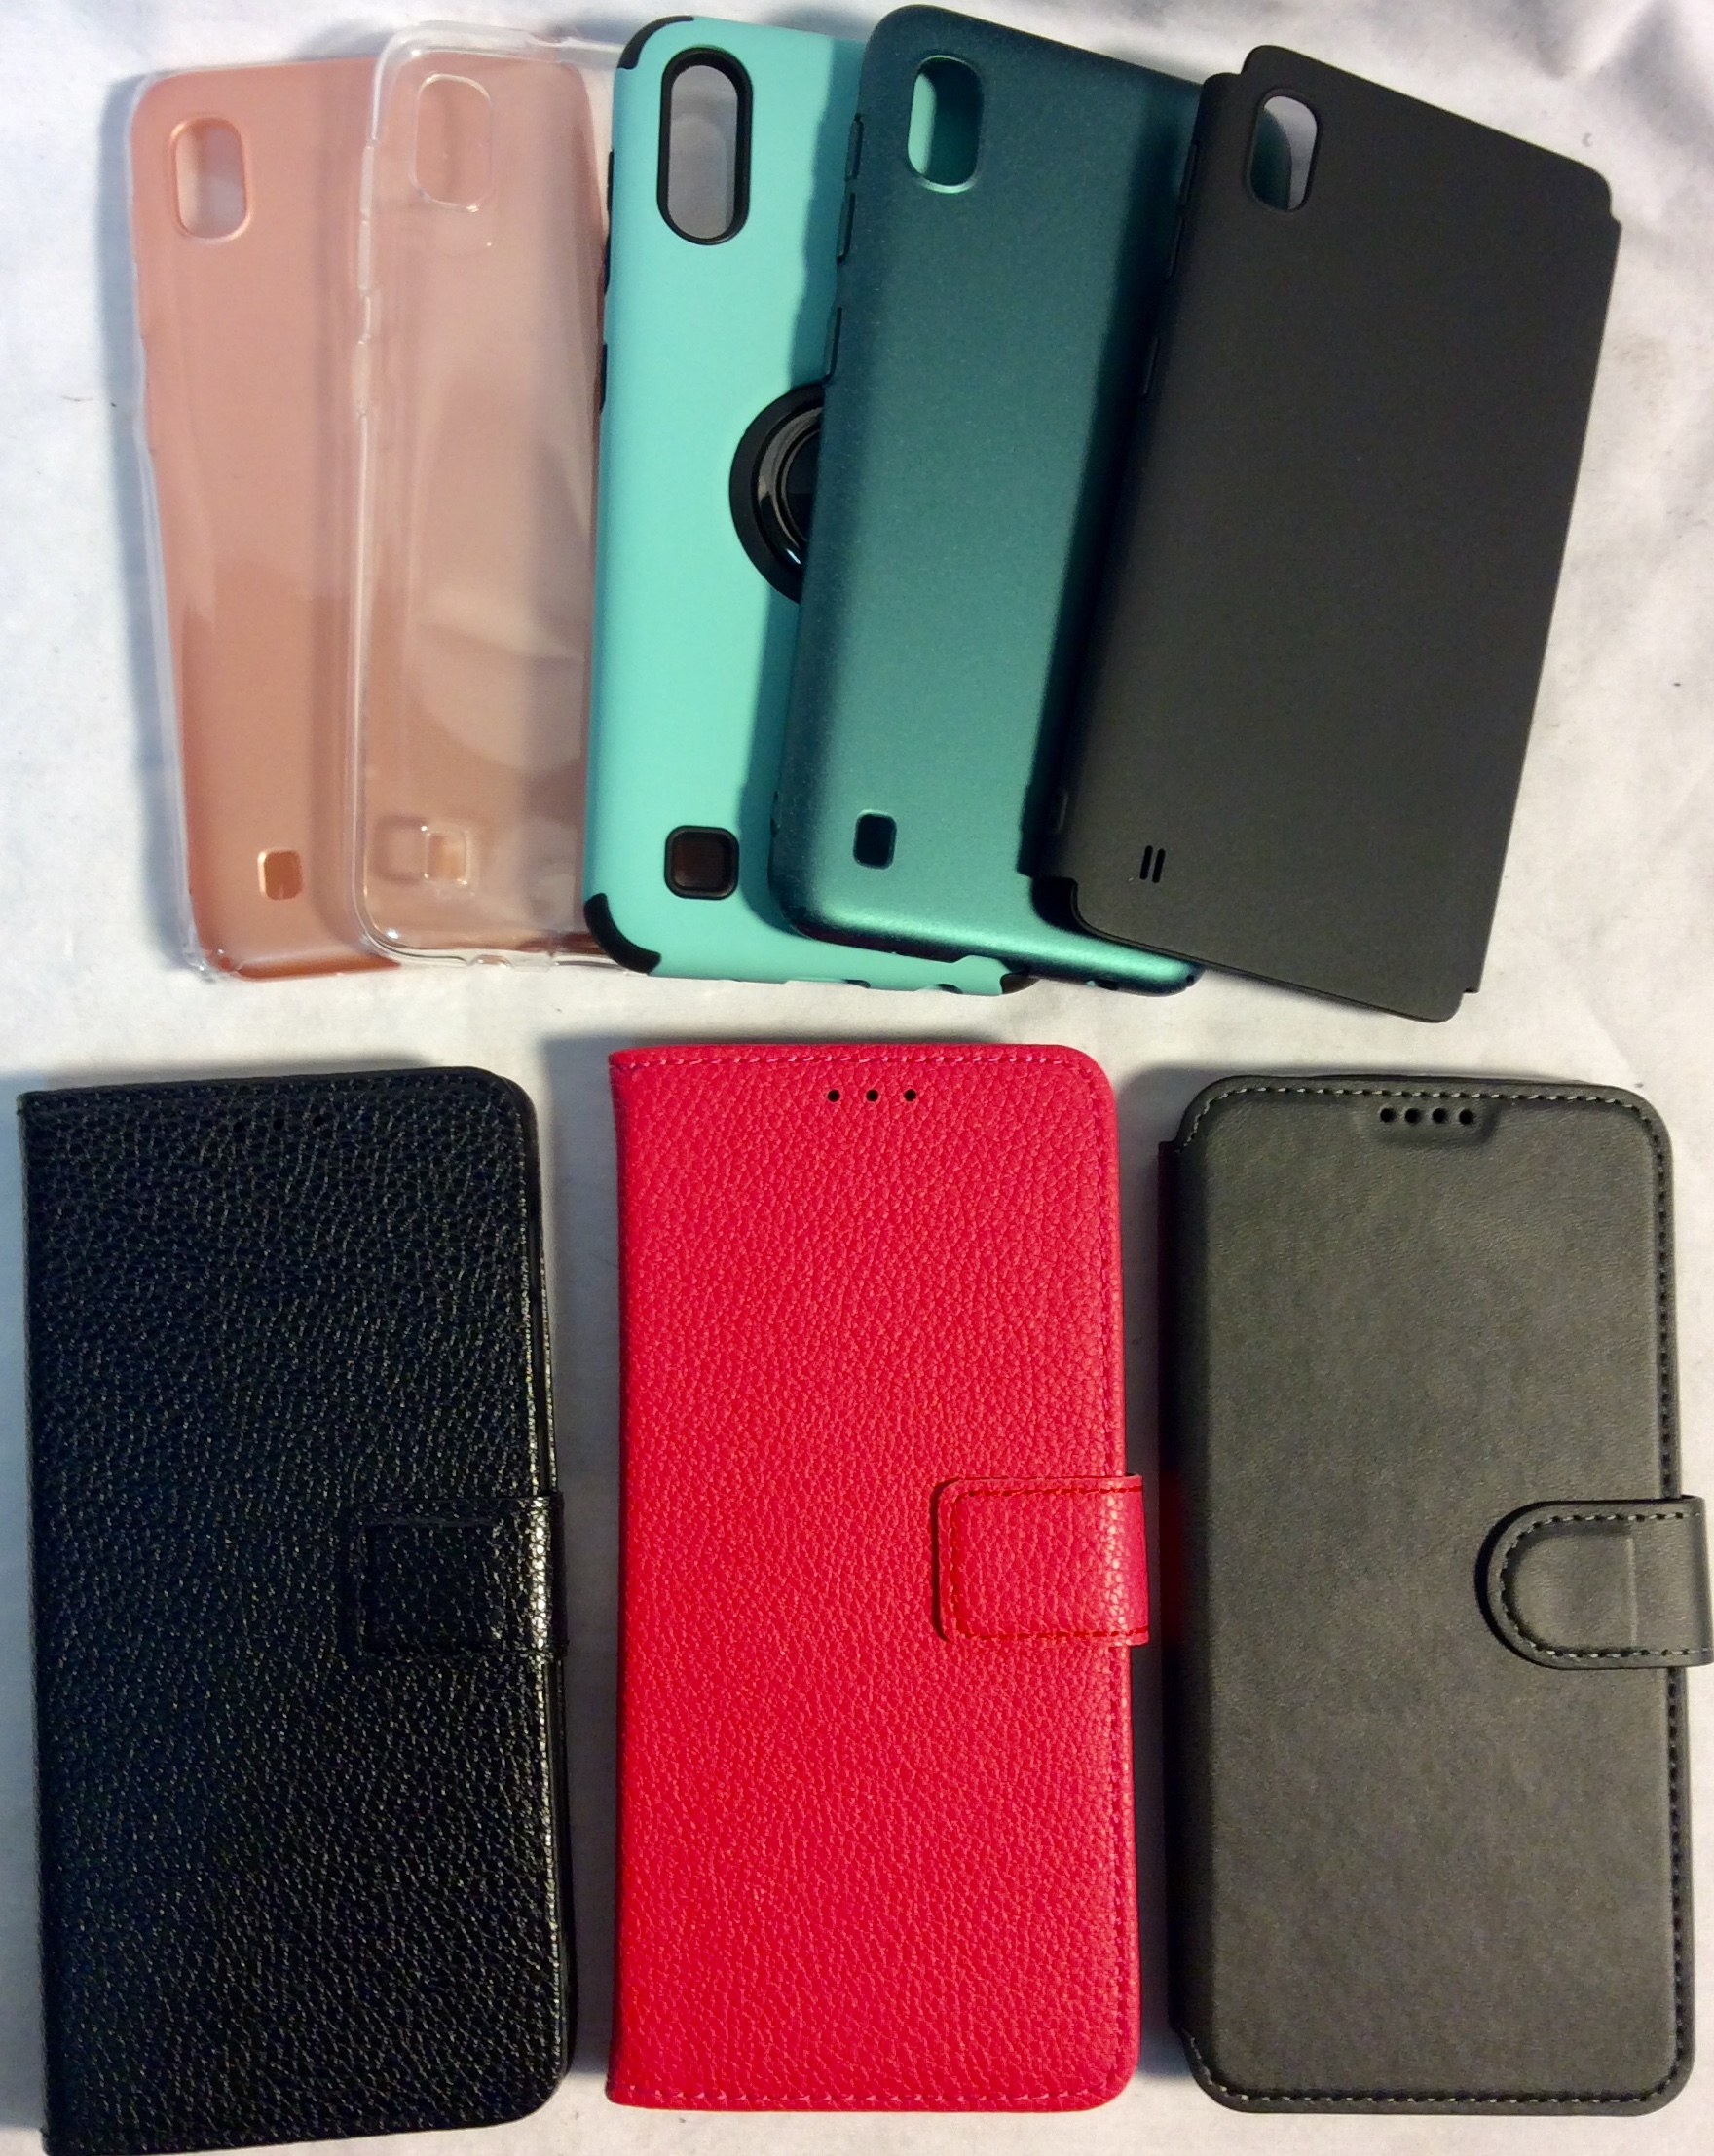 Assorted Samsung Galaxy A10 cases